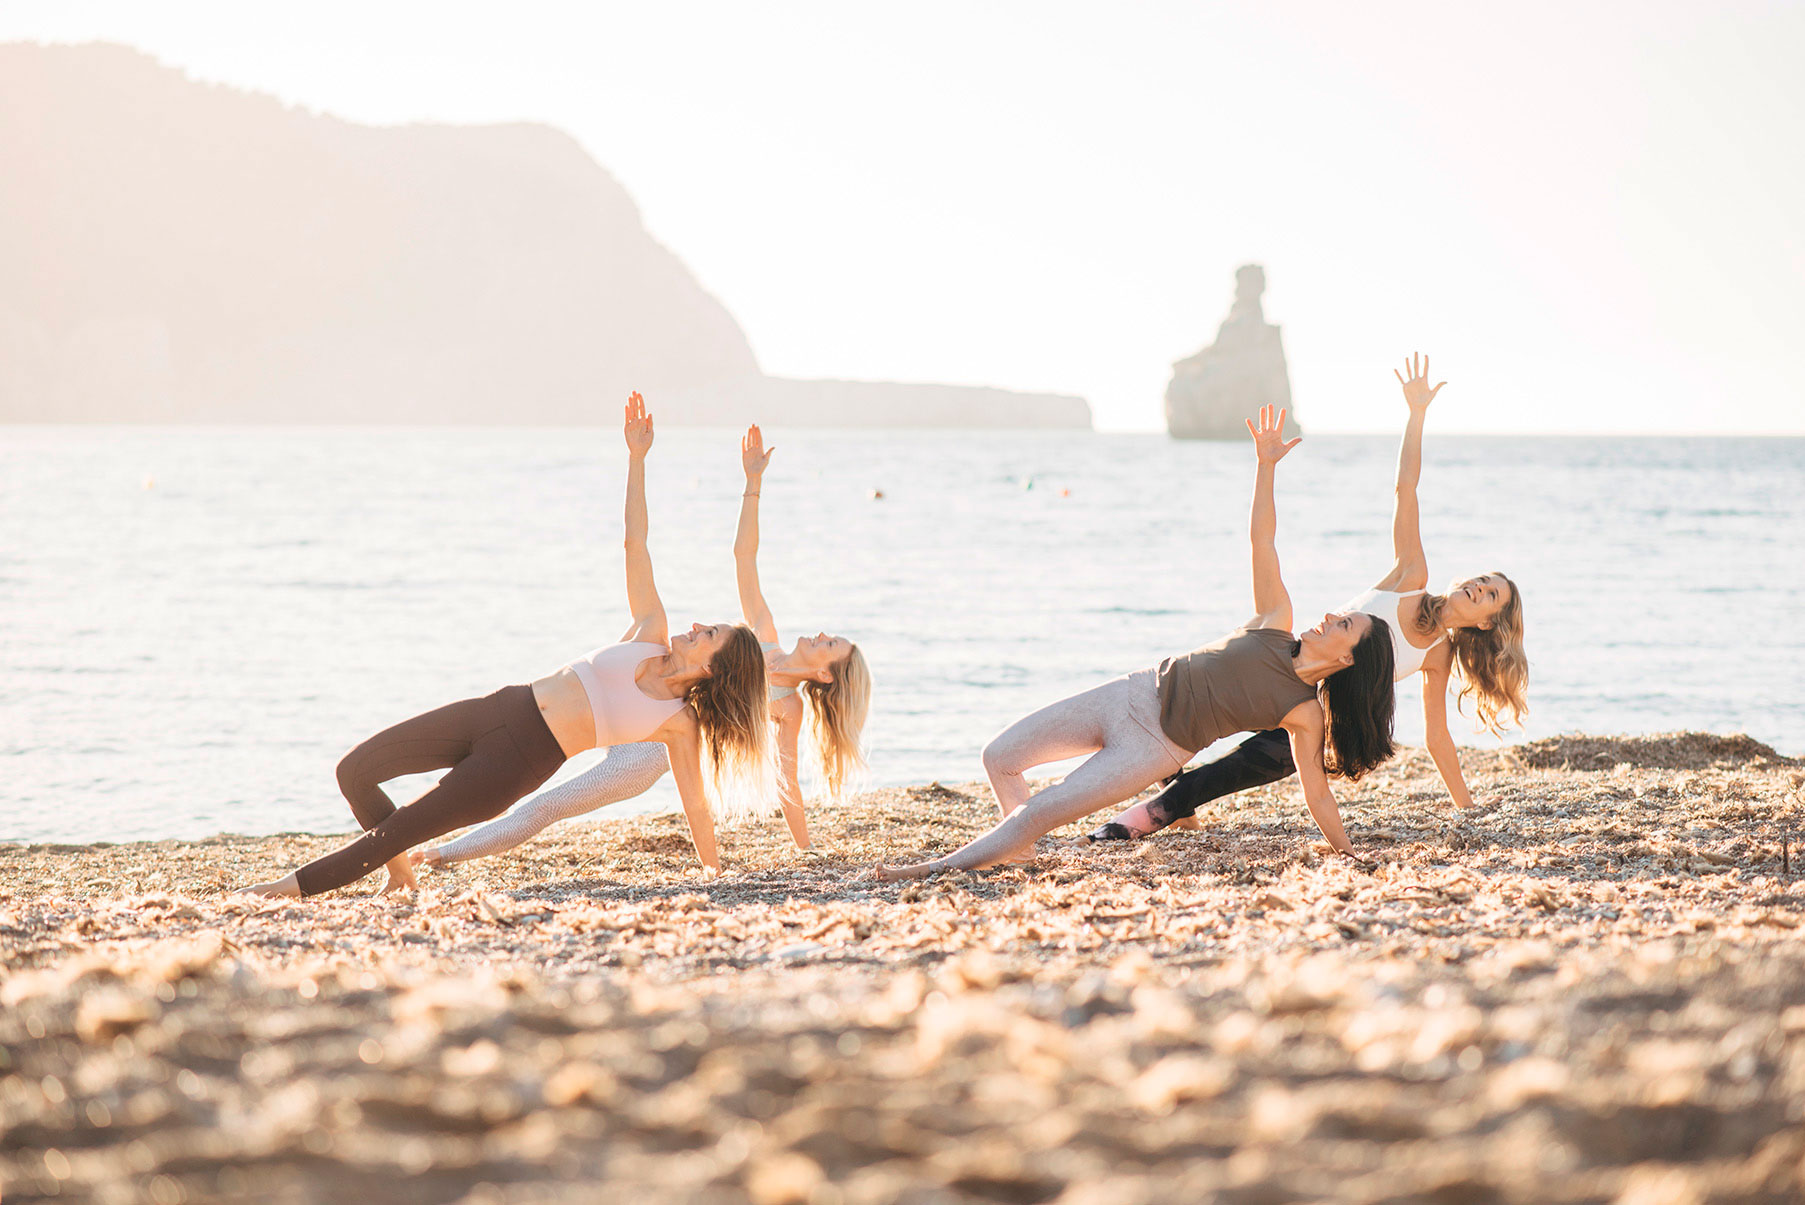 Harmonic_Escapes_yoga_retreat_Ibiza_Benirras_beach